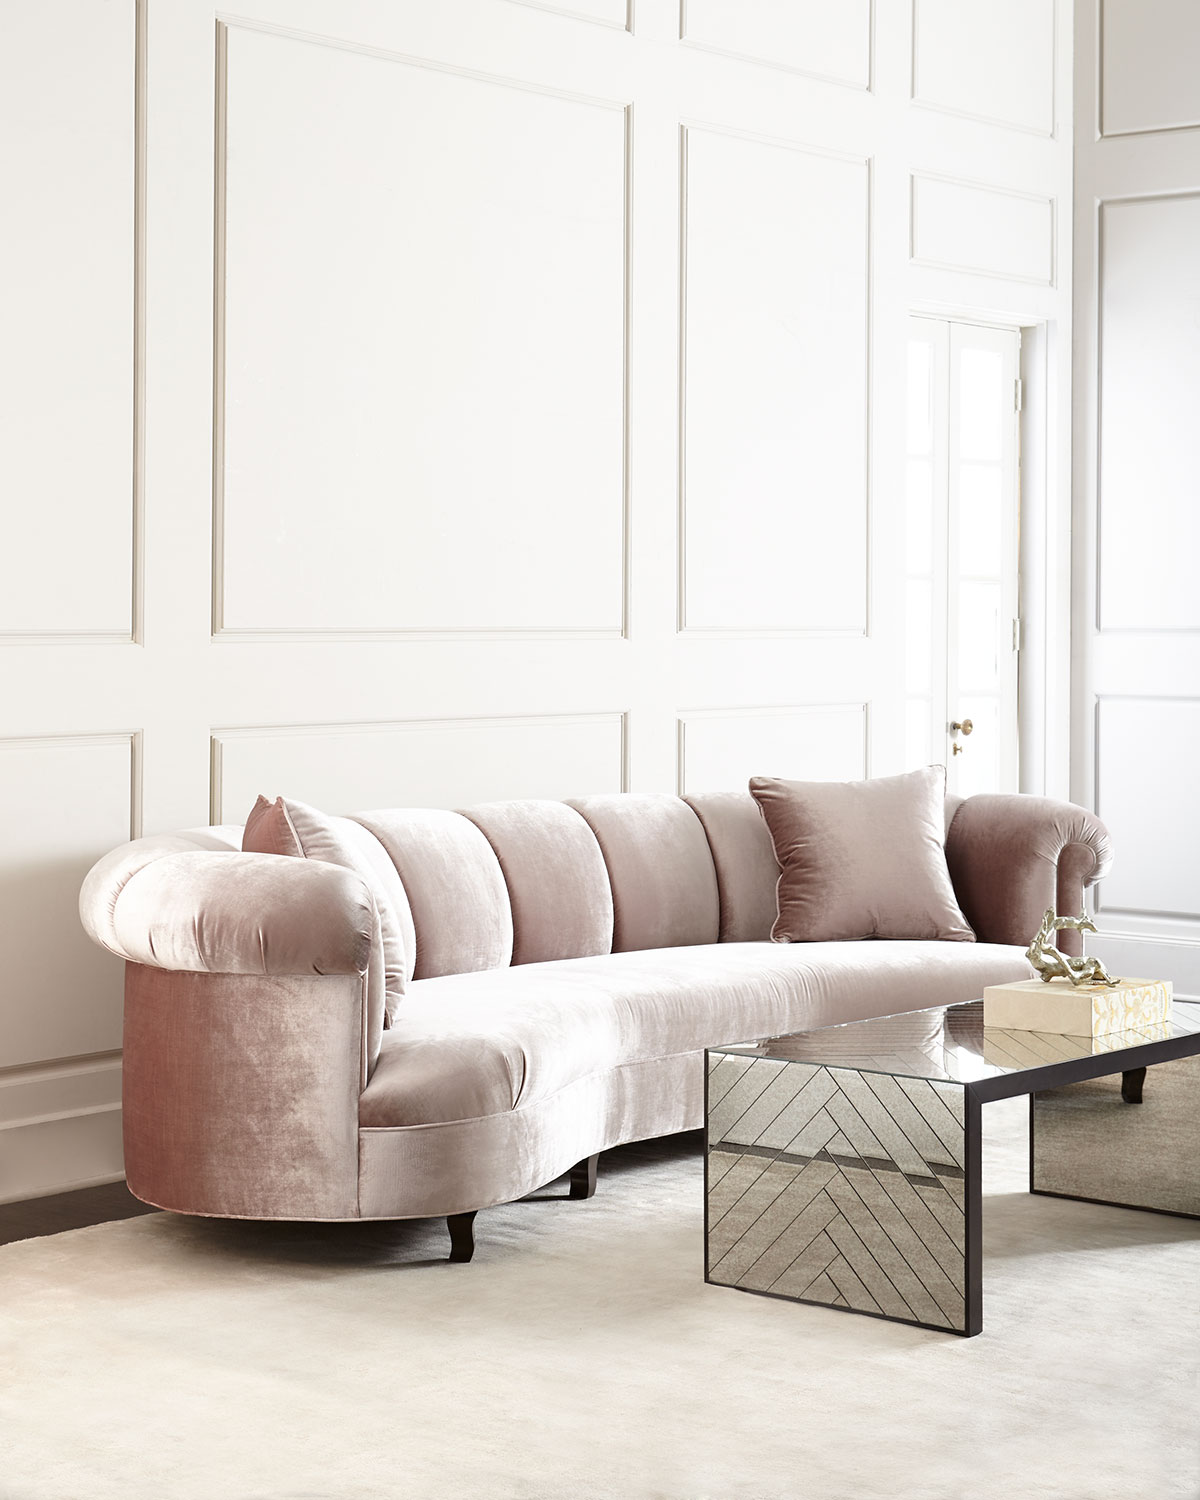 Audrey Channel Tufted Sofa 90